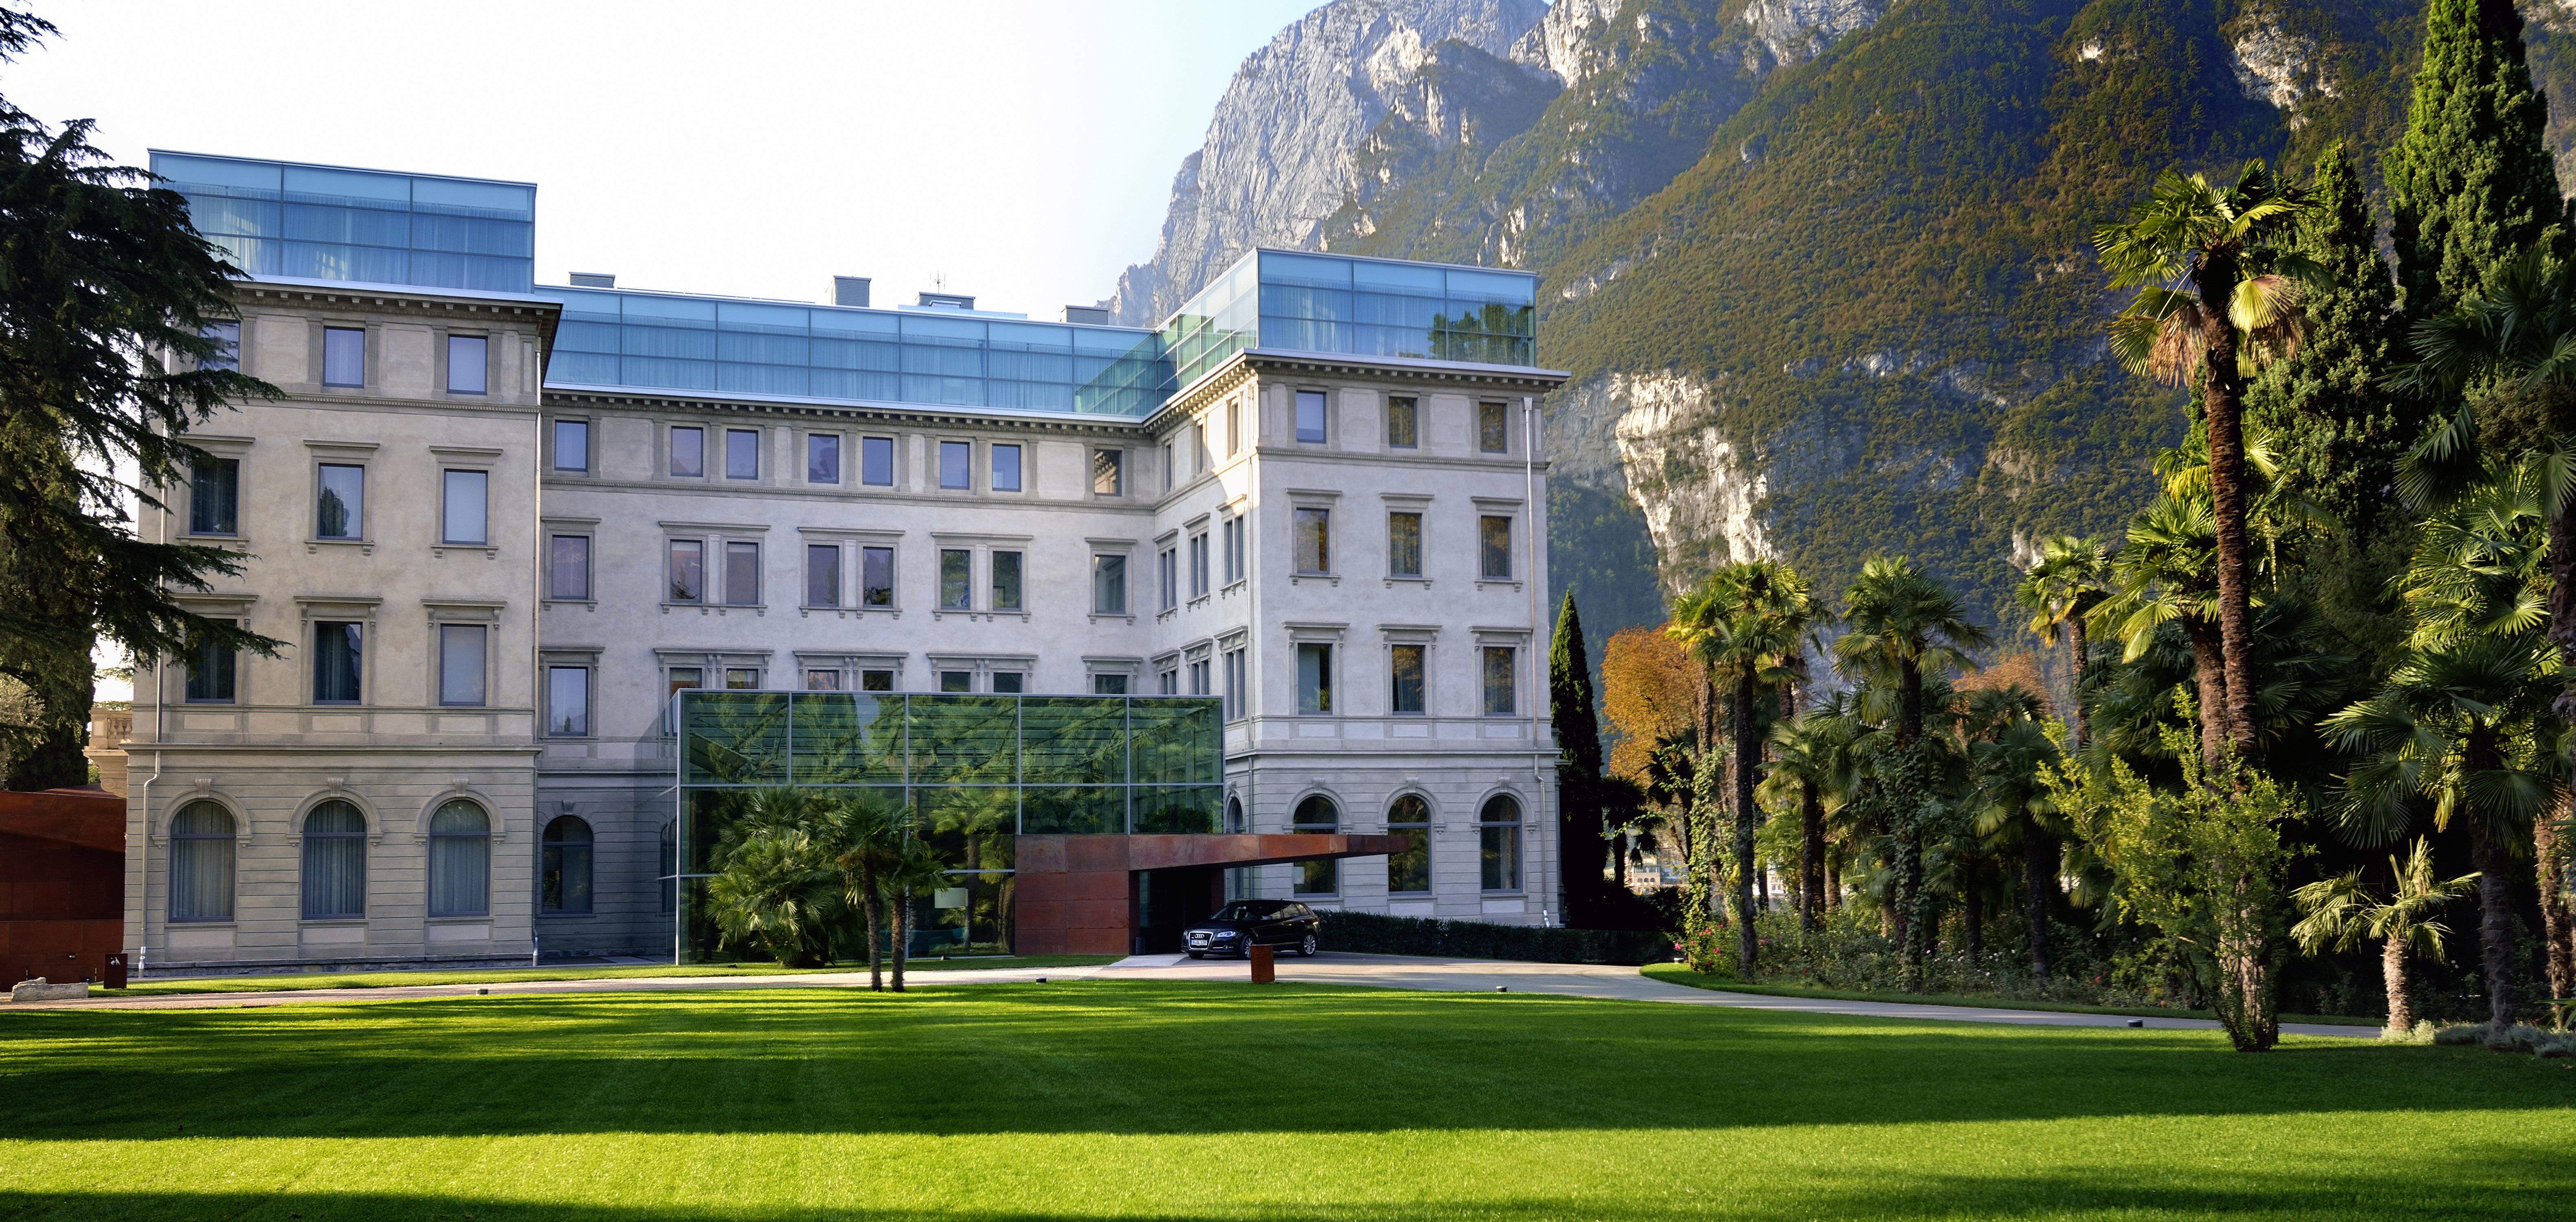 Exterior Modern Mountains grass building stately home tree neighbourhood house château residential area mansion home lawn palace campus university government building